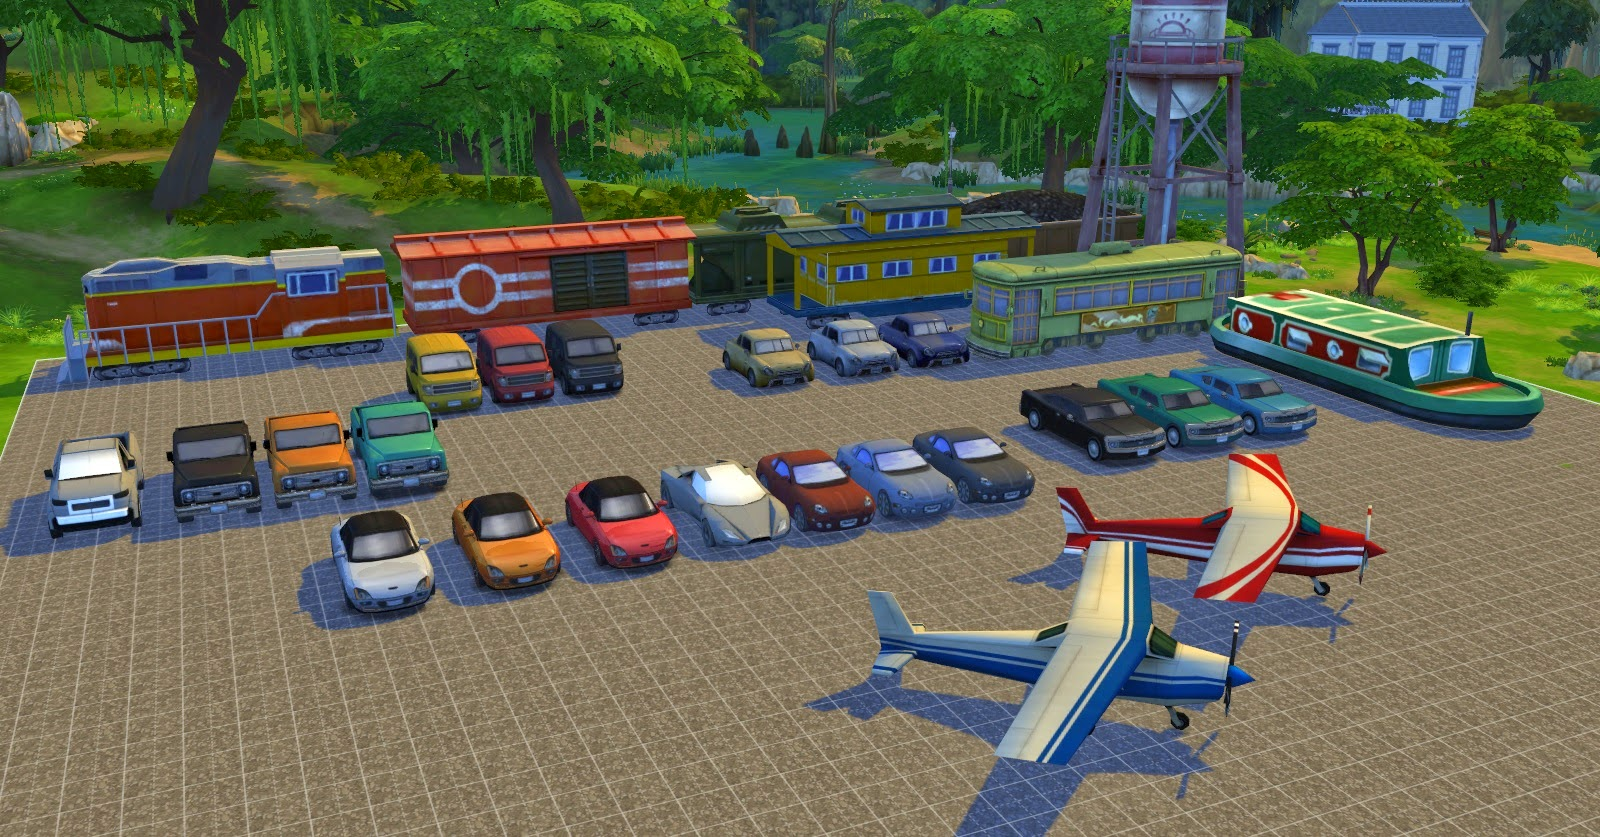 My sims 4 blog decorative vehicles cheat cars trains for Mods sims 4 muebles